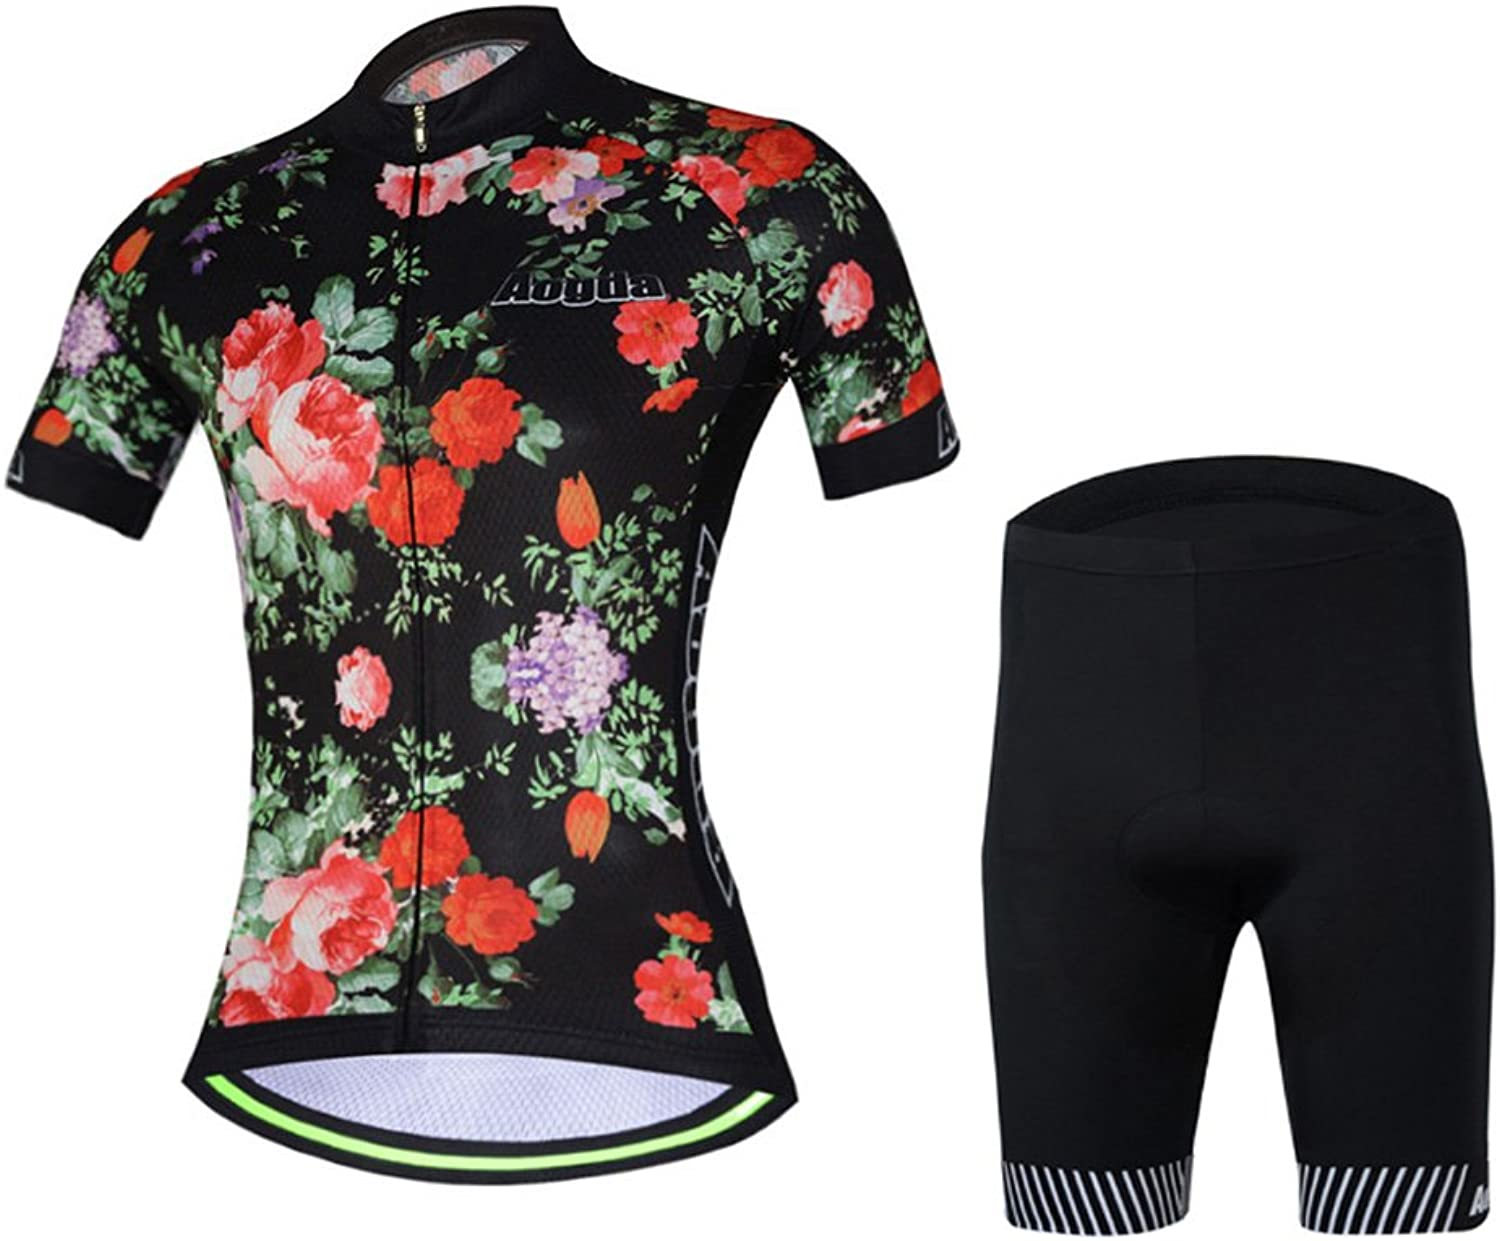 0a51d8bc0ce1 Women Jersey Bike Biking Mountain Bicycle Clothing Cycling Shirts ...